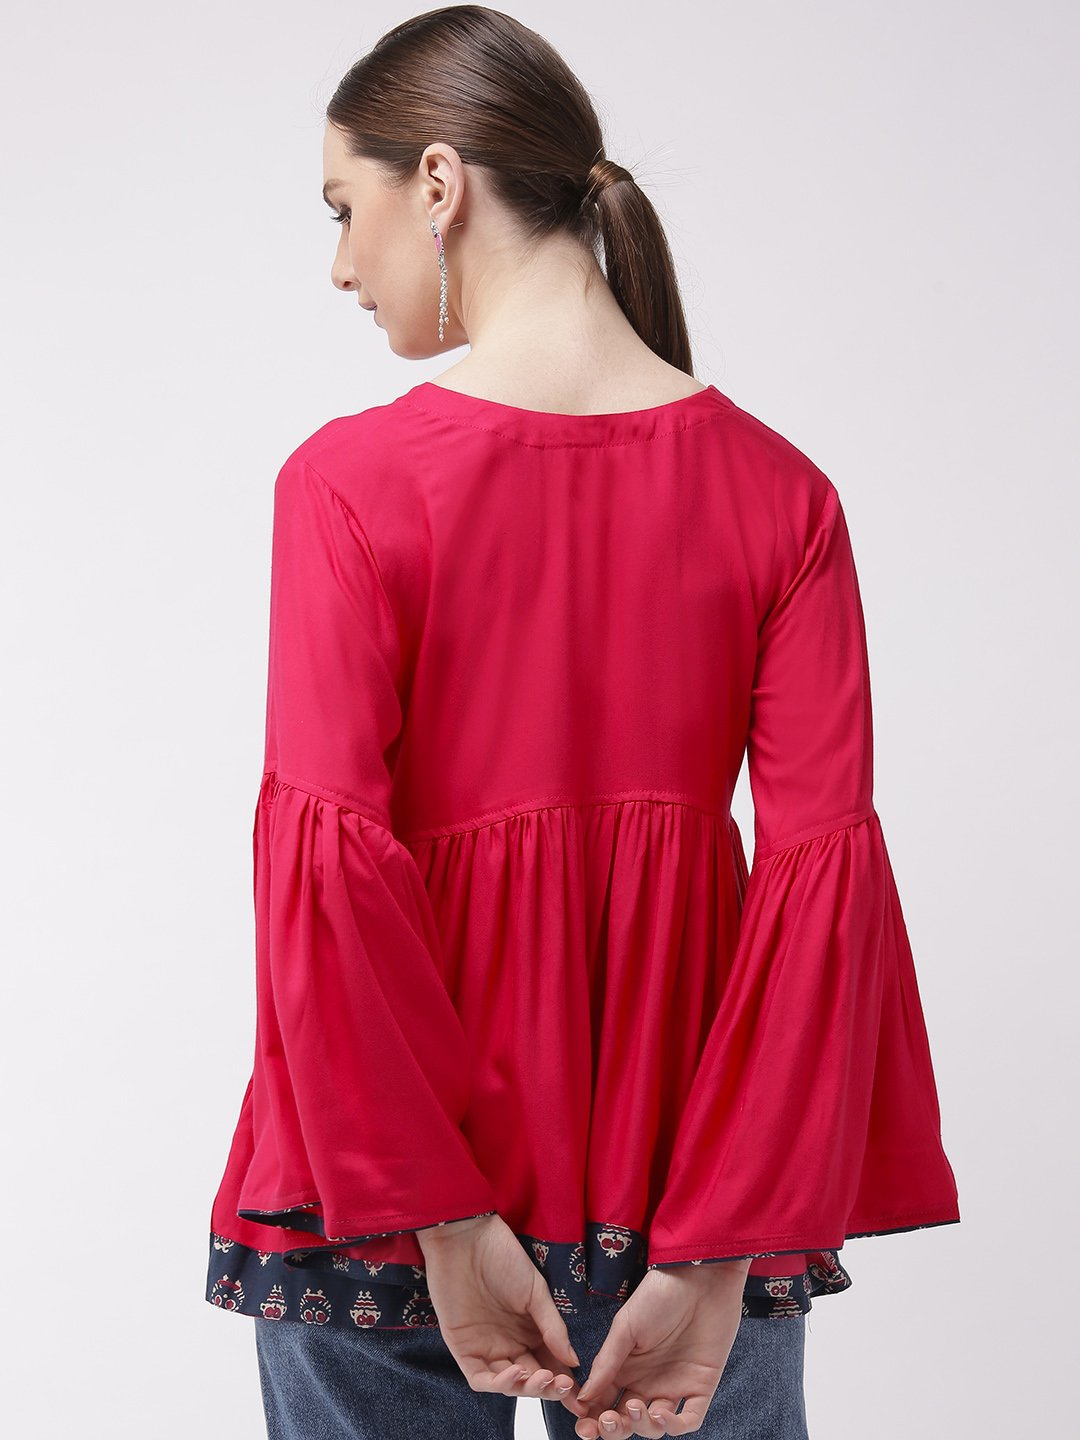 Pink Bell Sleeves Top With Border